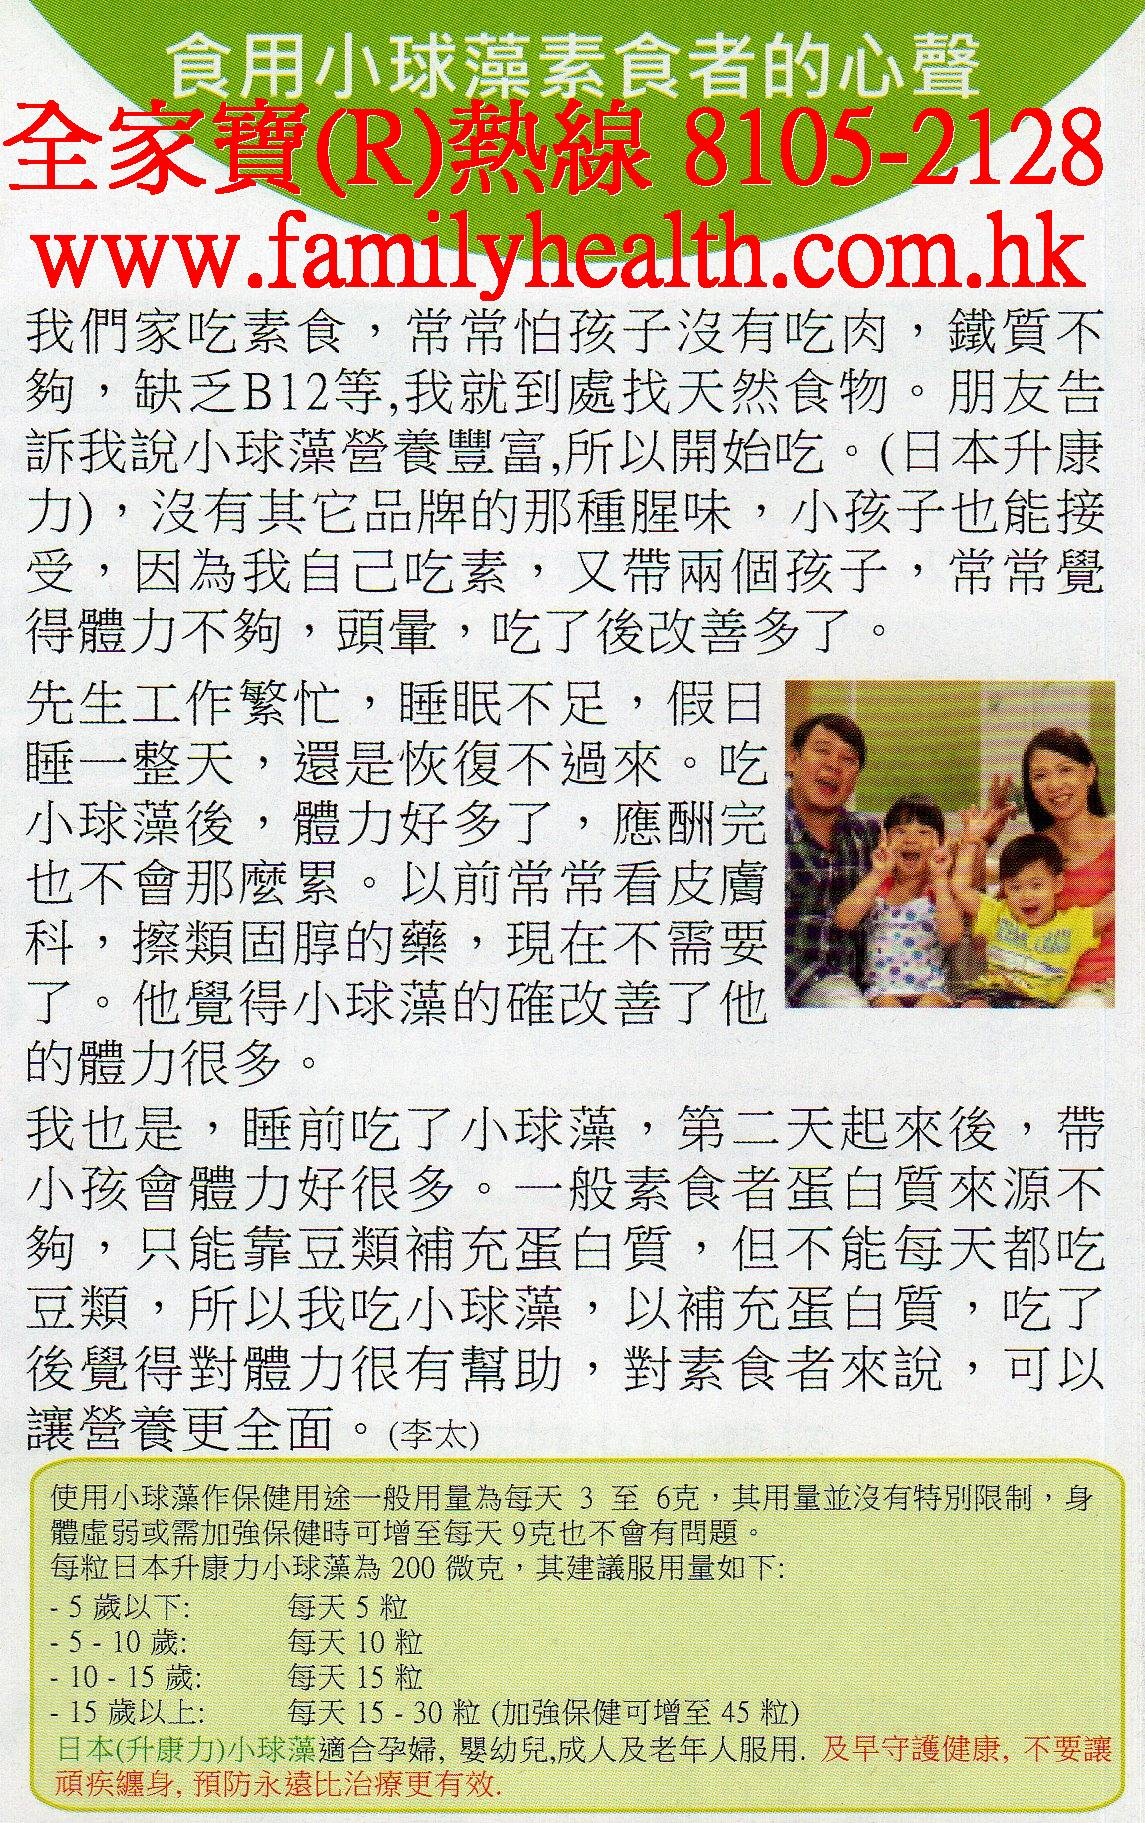 http://www.familyhealth.com.hk/files/full/1027_4.jpg